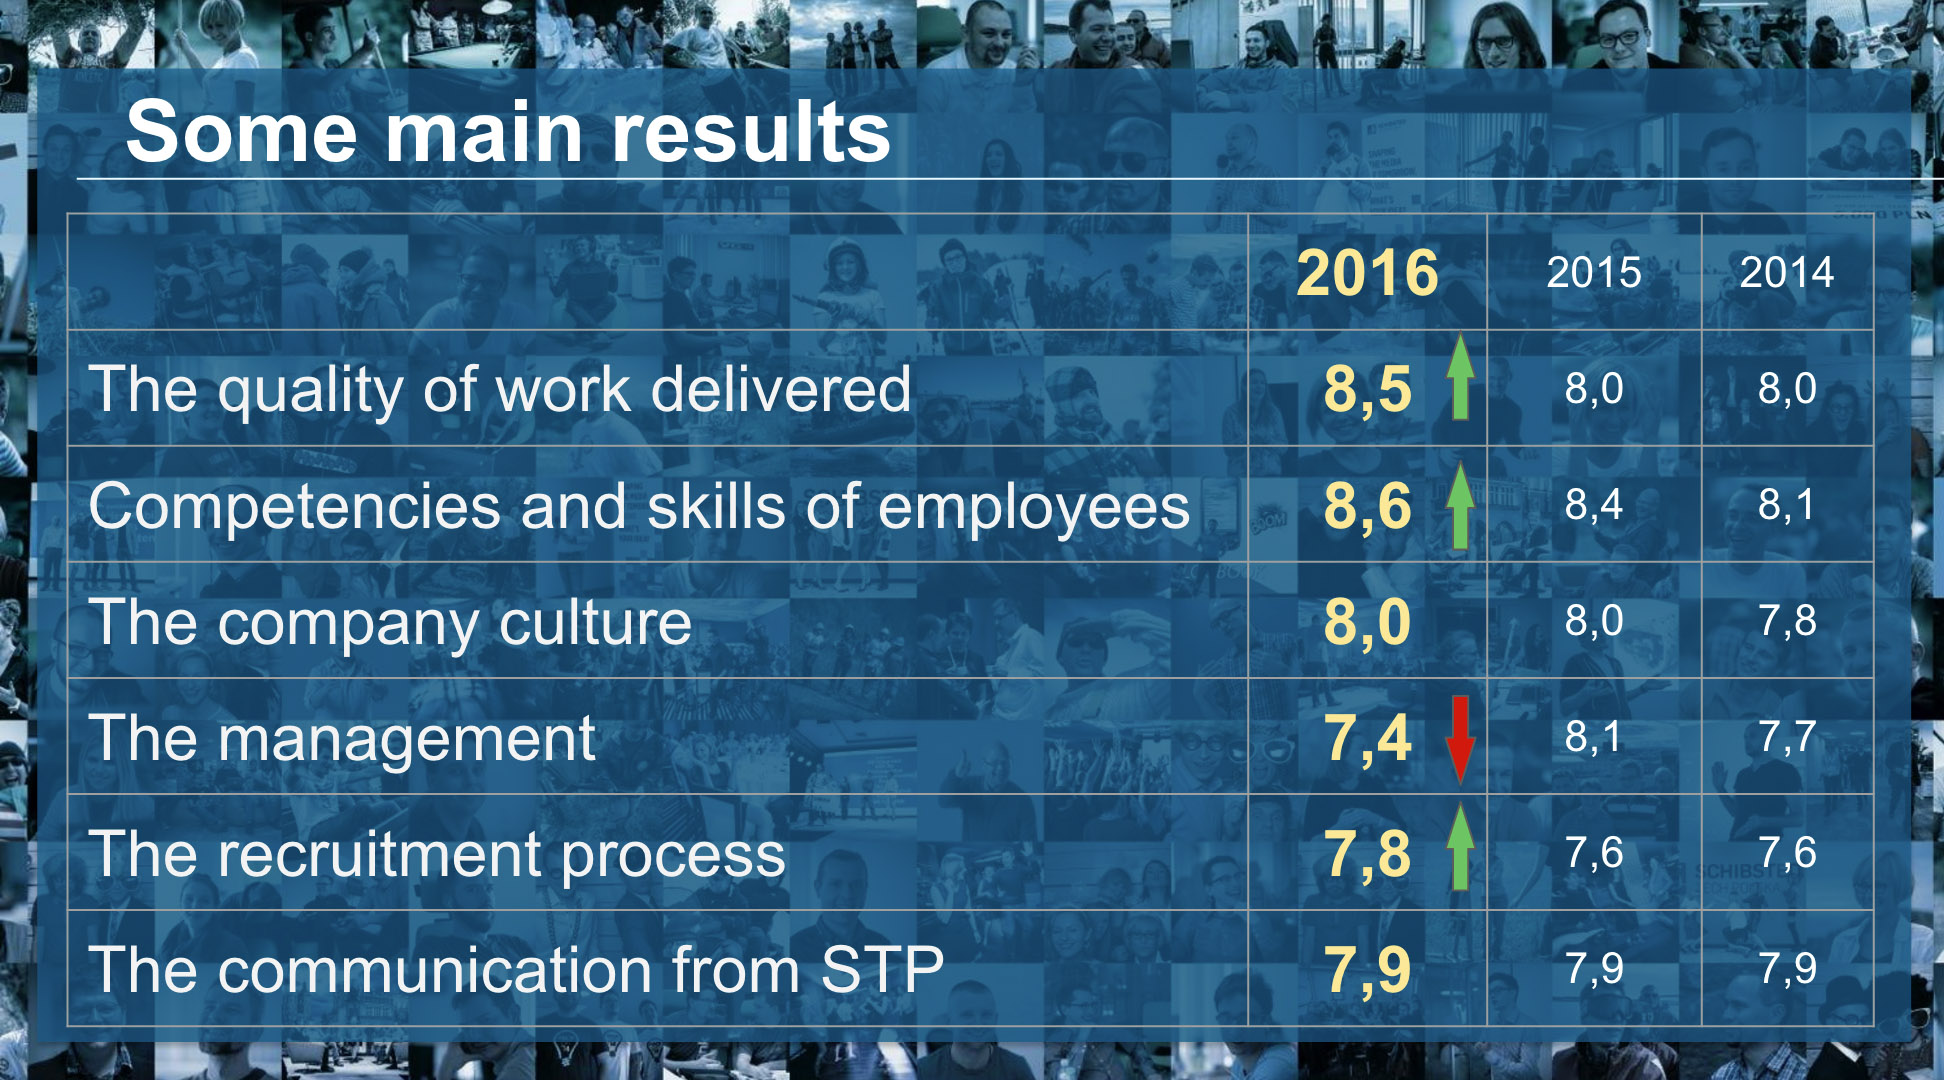 Partners rate the quality of work as well as the competencies and skills of the employees in Schibsted Tech Polska higher than before.